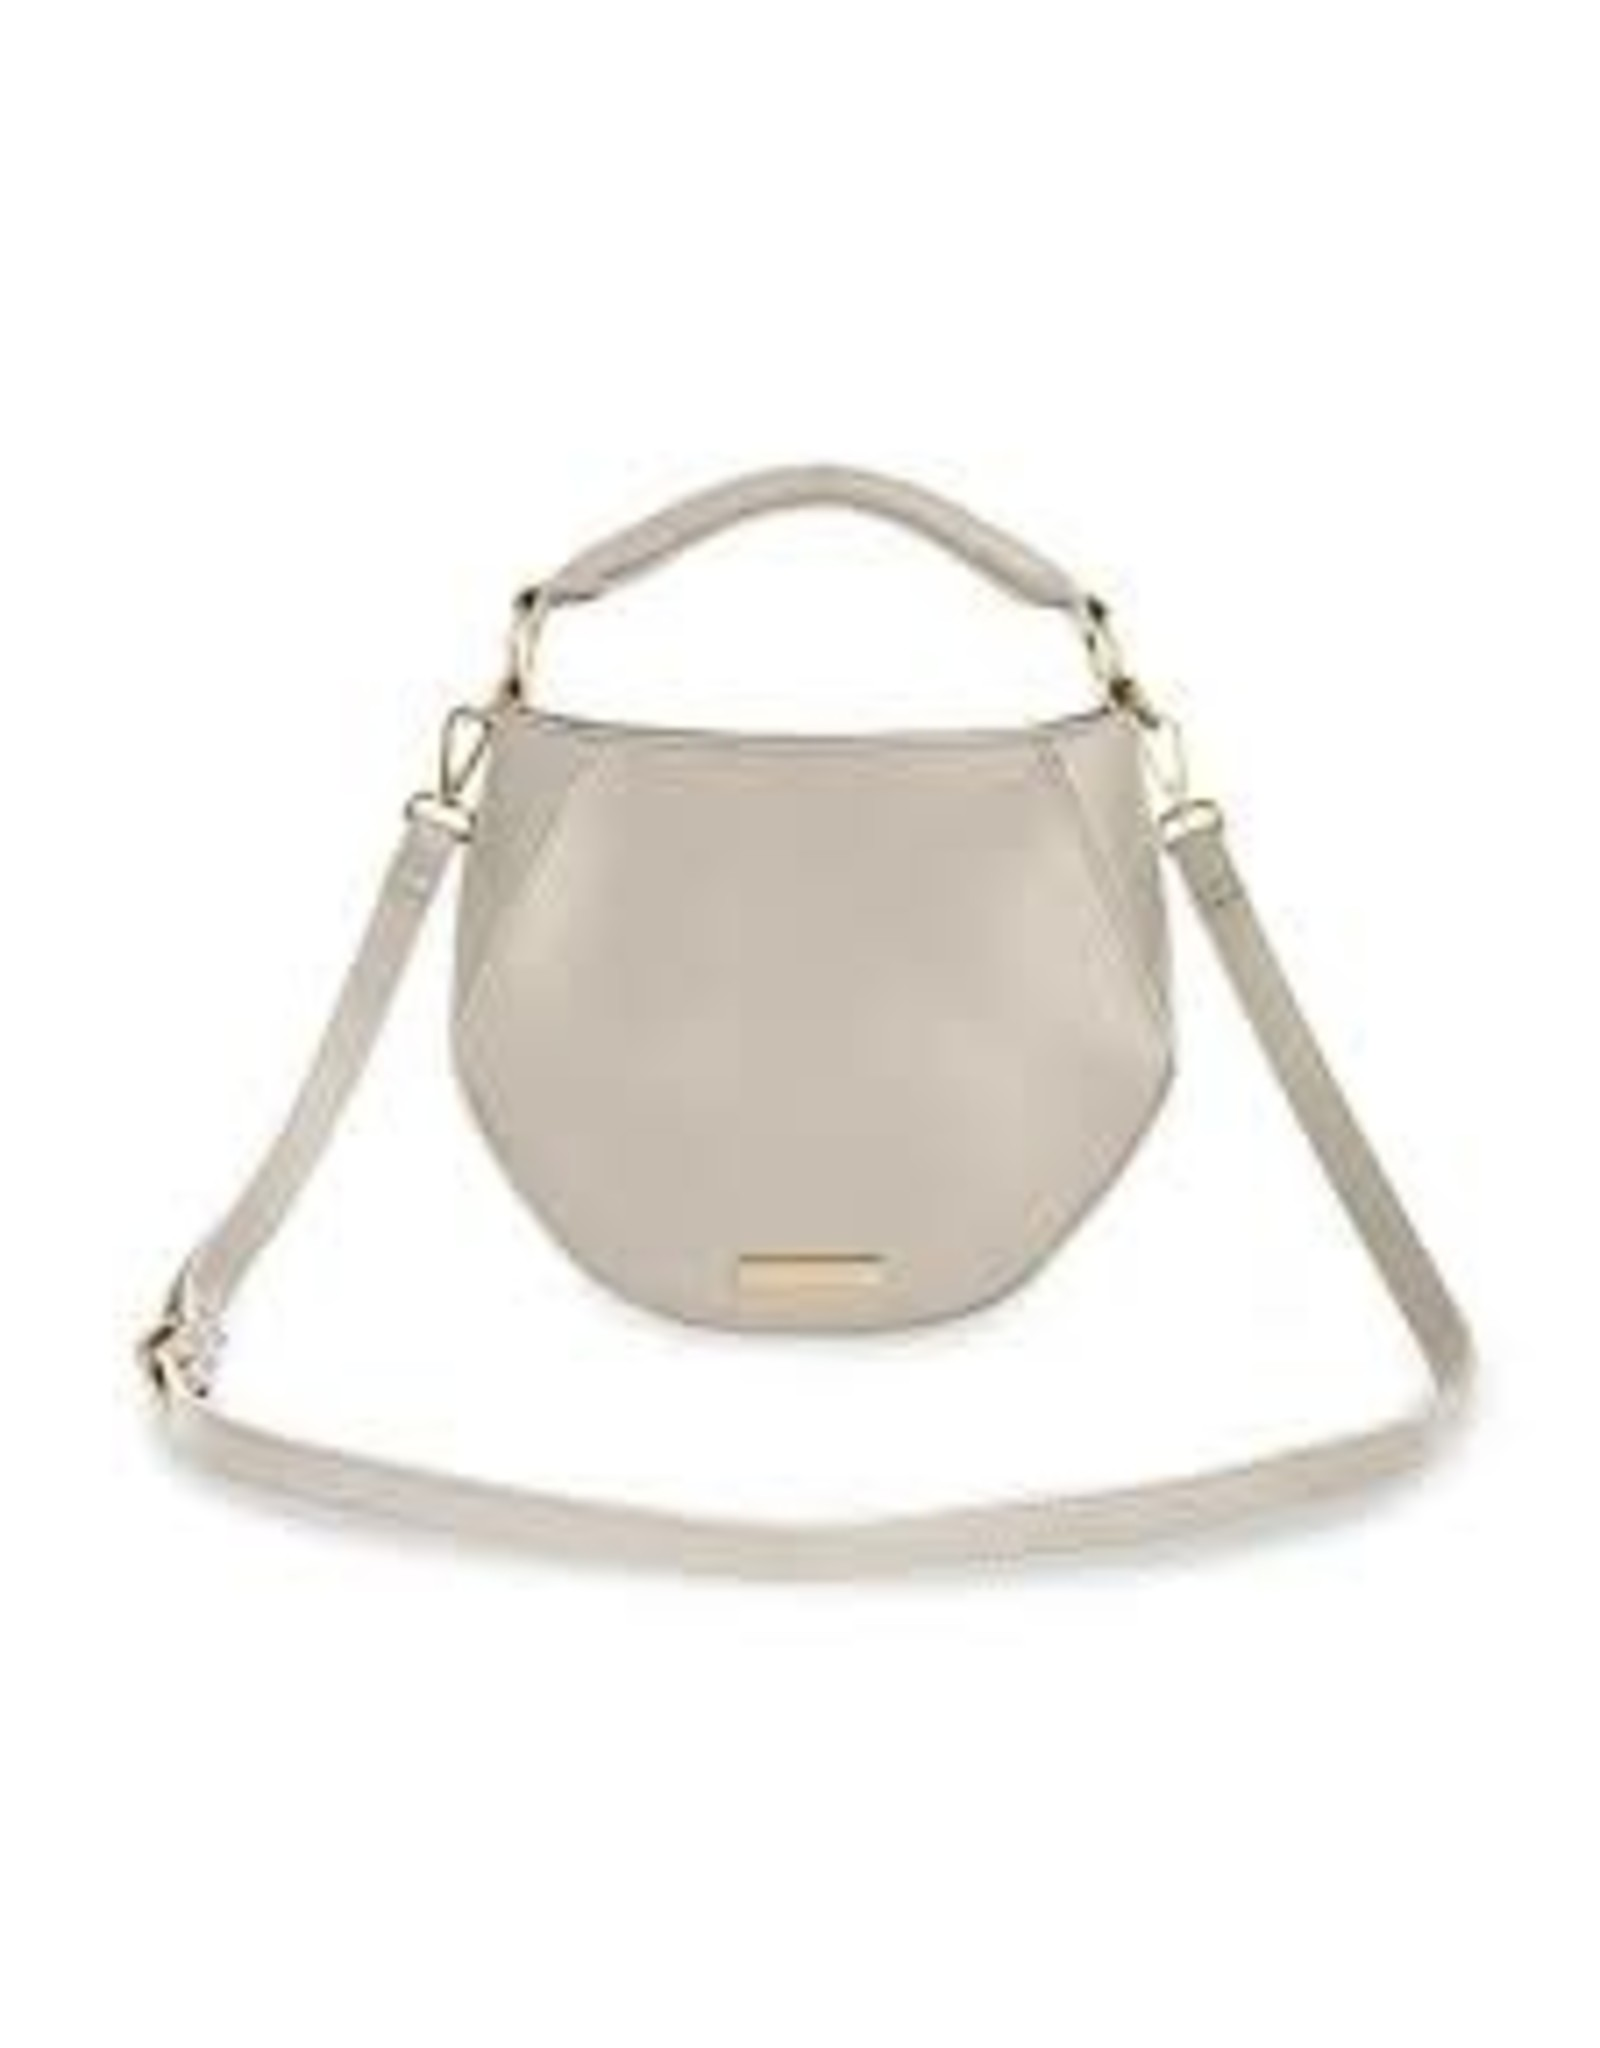 Zianna Cross Body